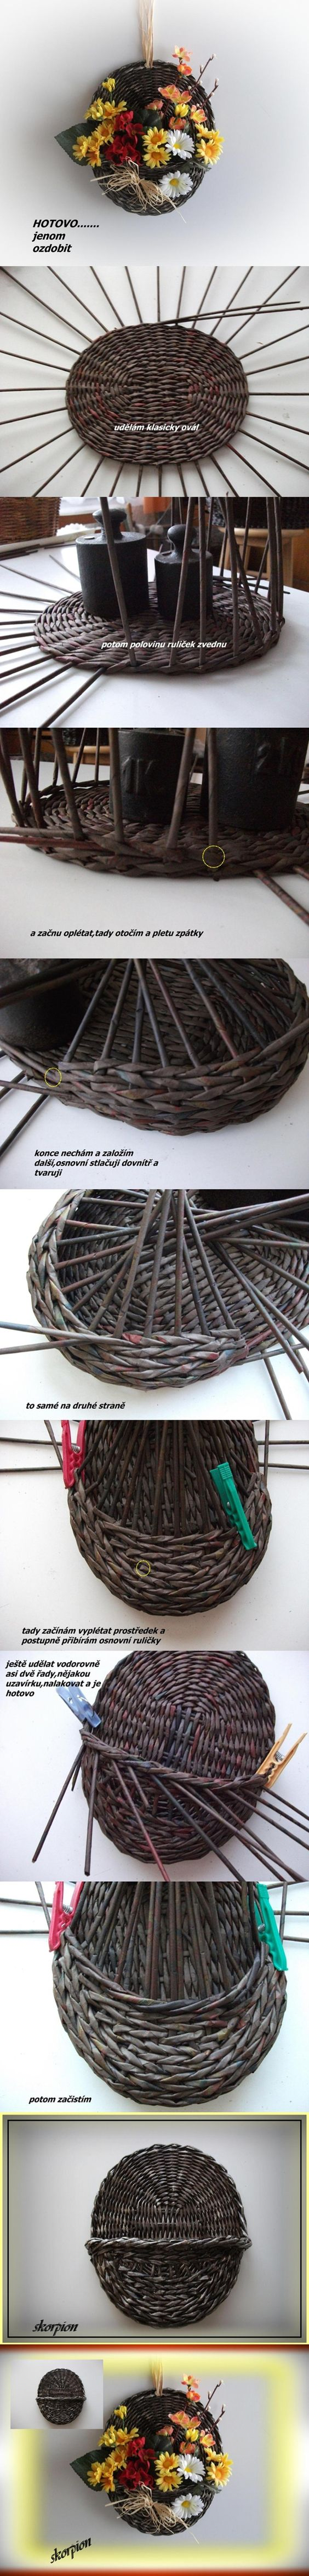 Planters, Newspaper and Hangers on Pinterest